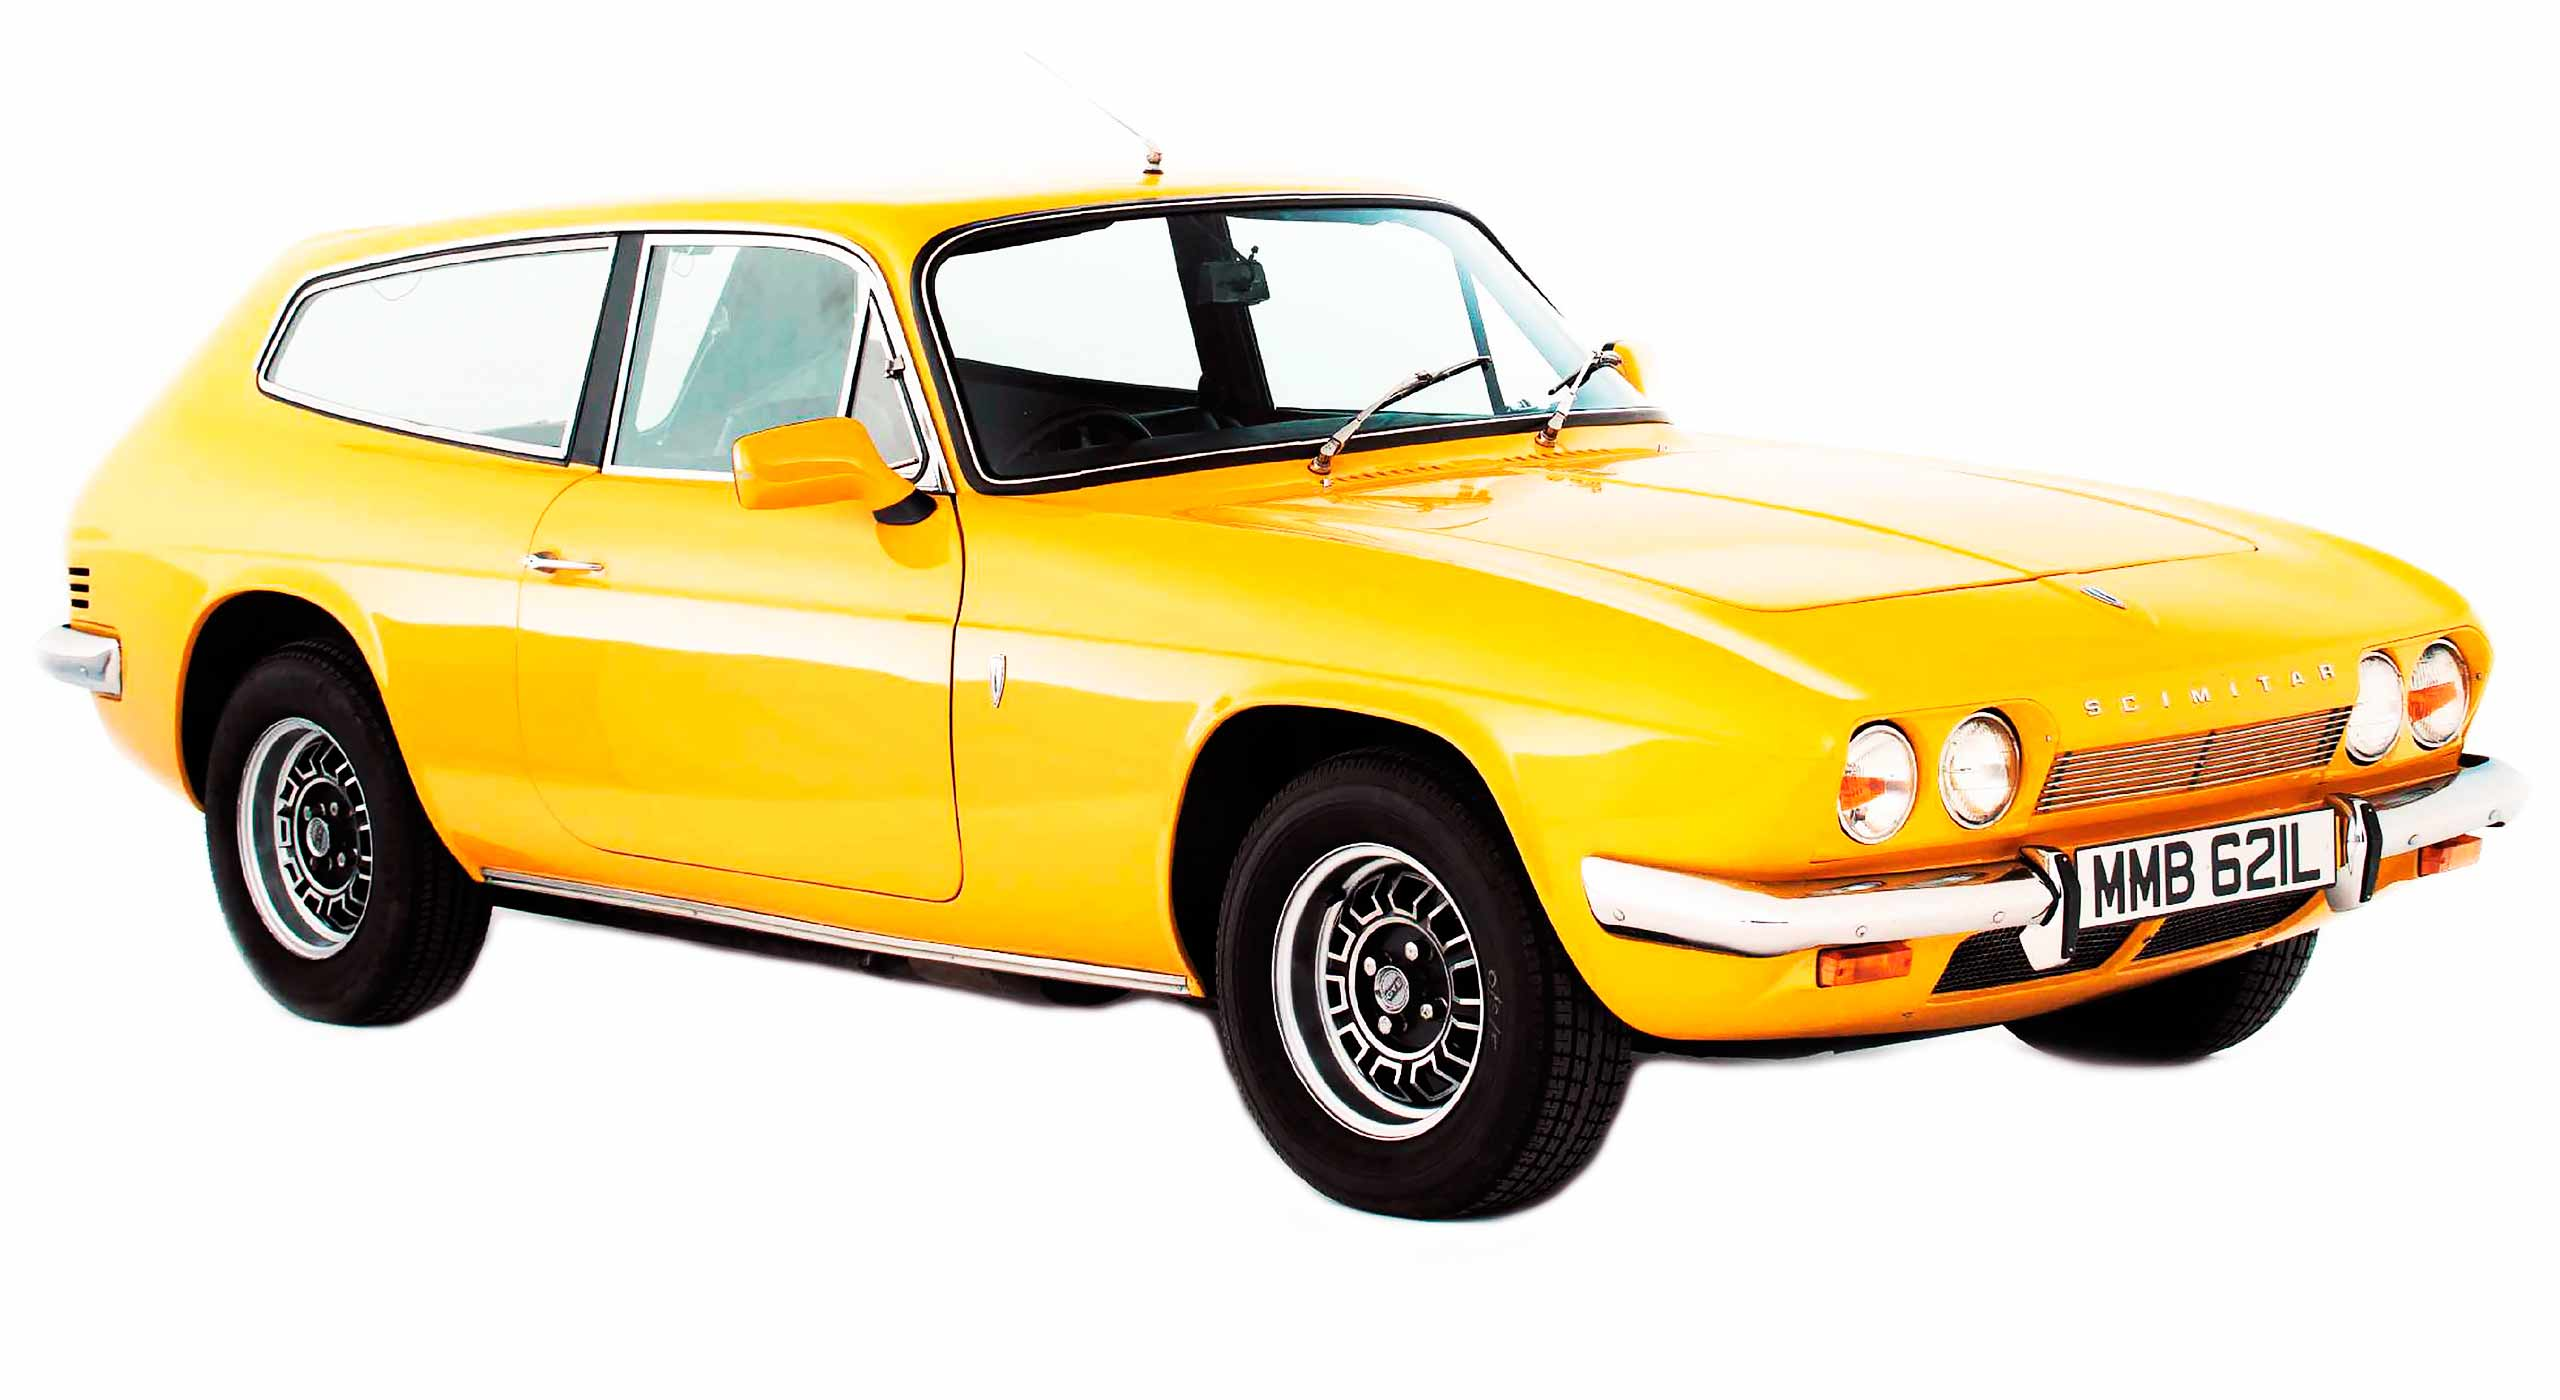 Scimitar-A9R16E1 Interesting Tvr Griffith 500 Ignition Timing Cars Trend